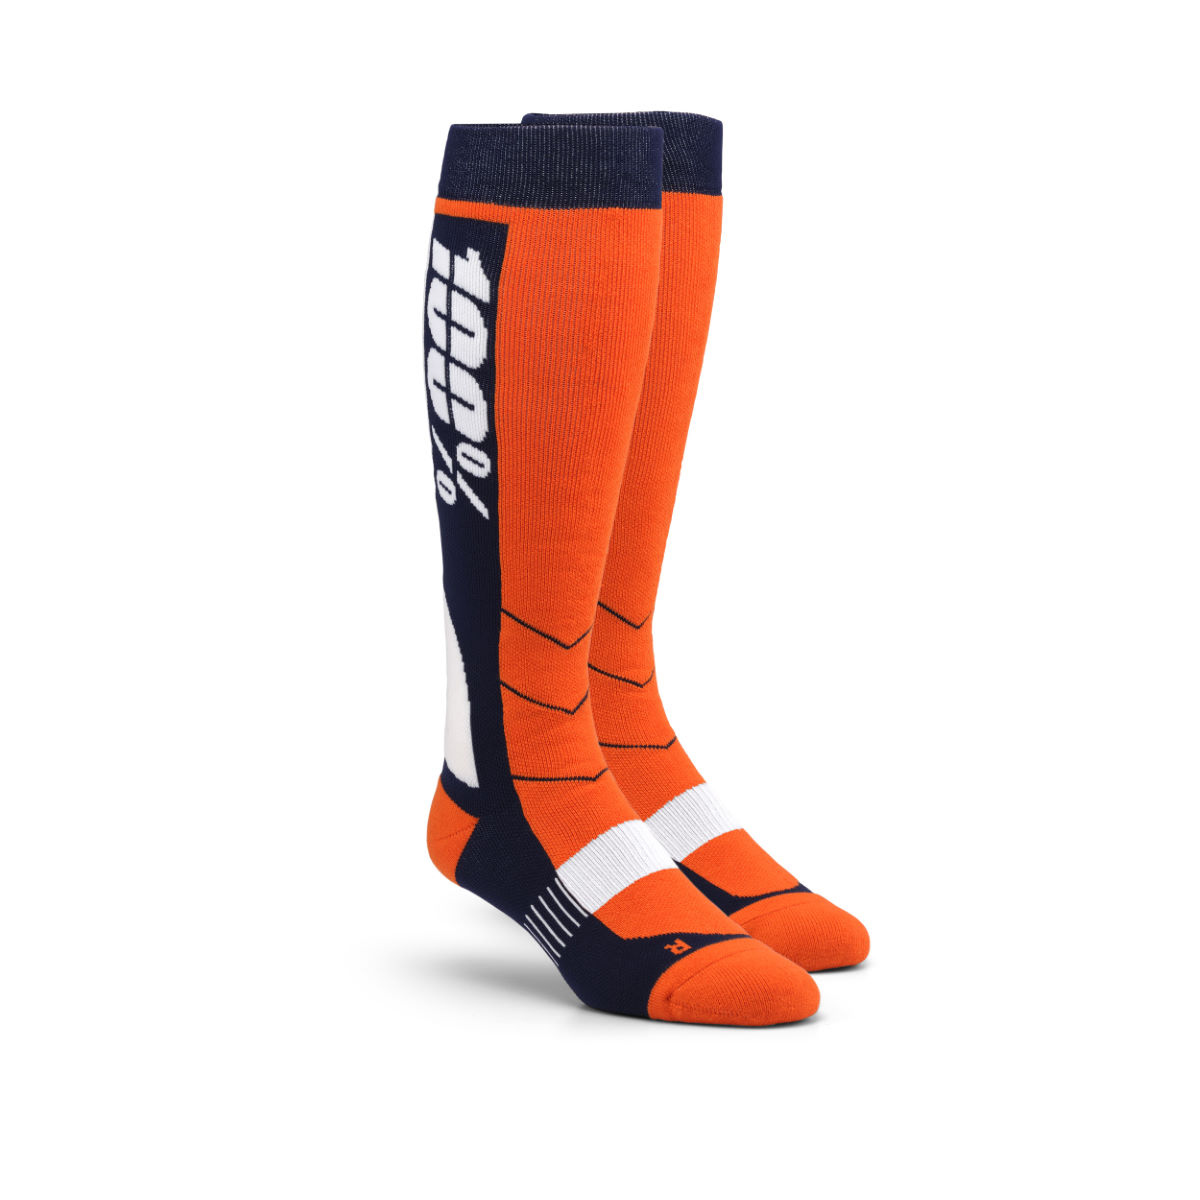 100% Hi-Side Performance Moto Socks - Calcetines